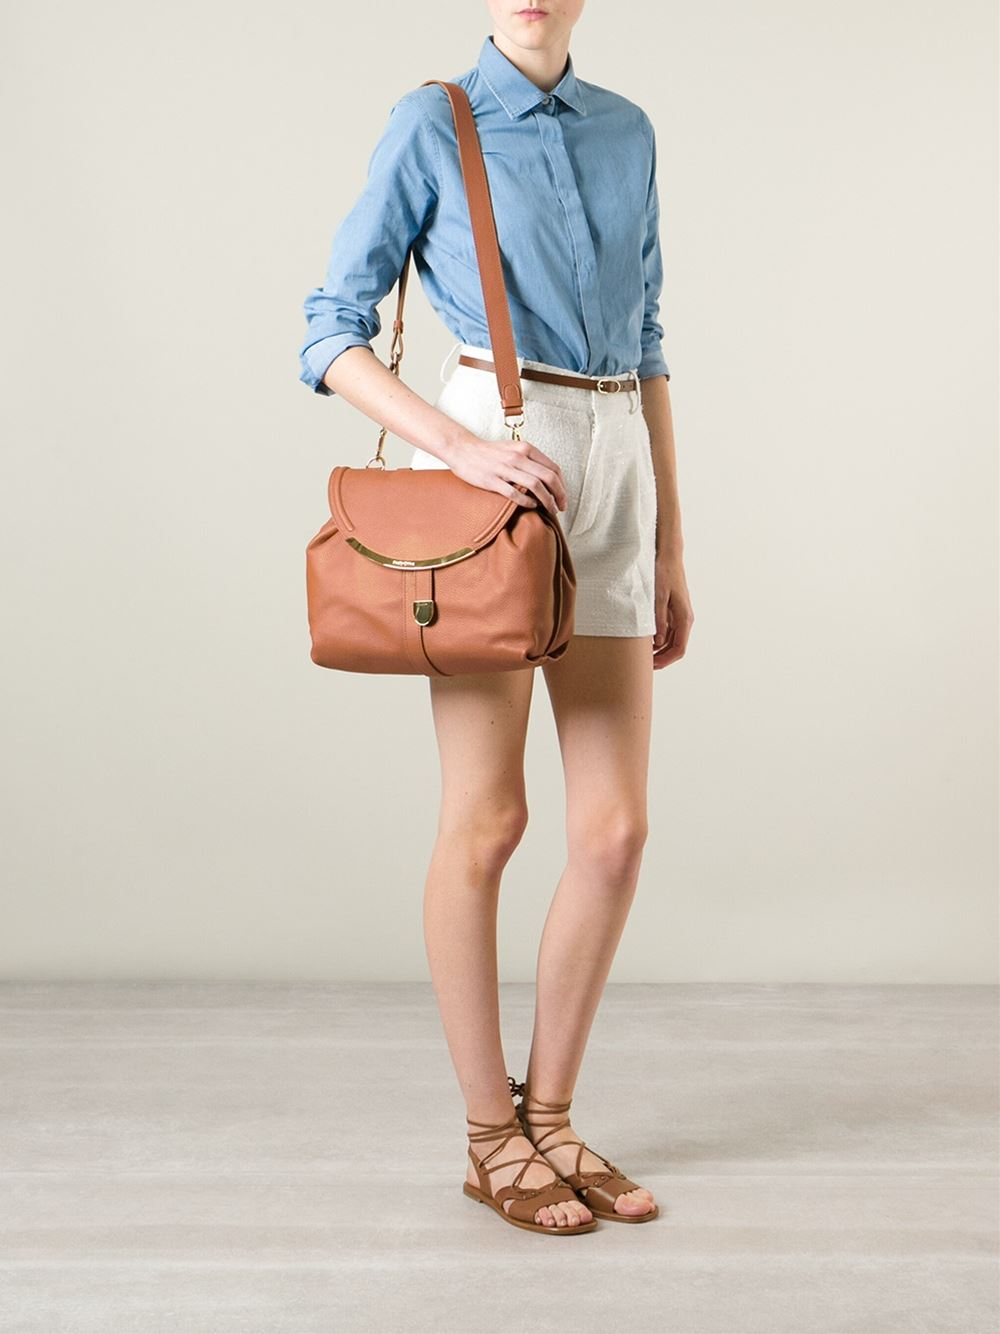 Lyst - See By Chloé  Lizzie  Crossbody Bag in Brown 99cacb7346a